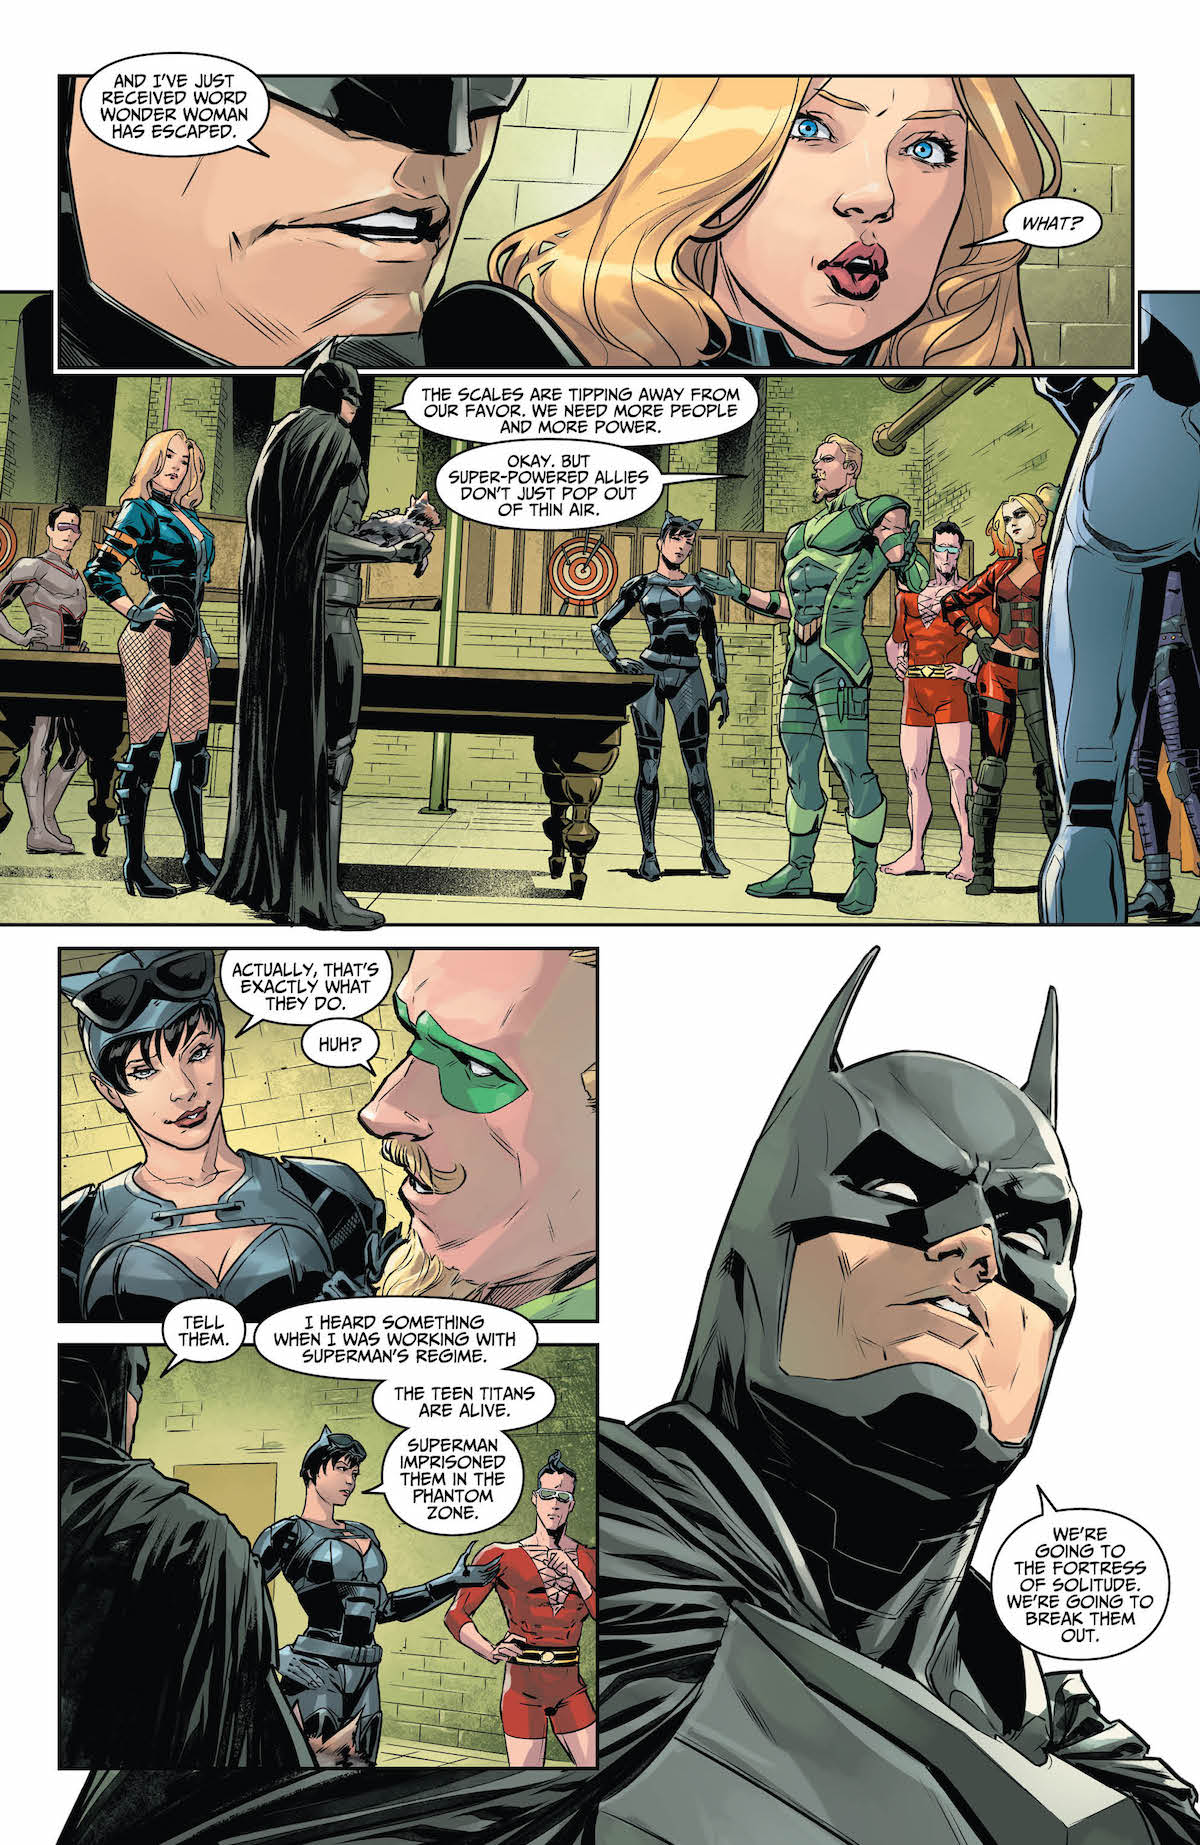 Injustice 2 #18 page 4